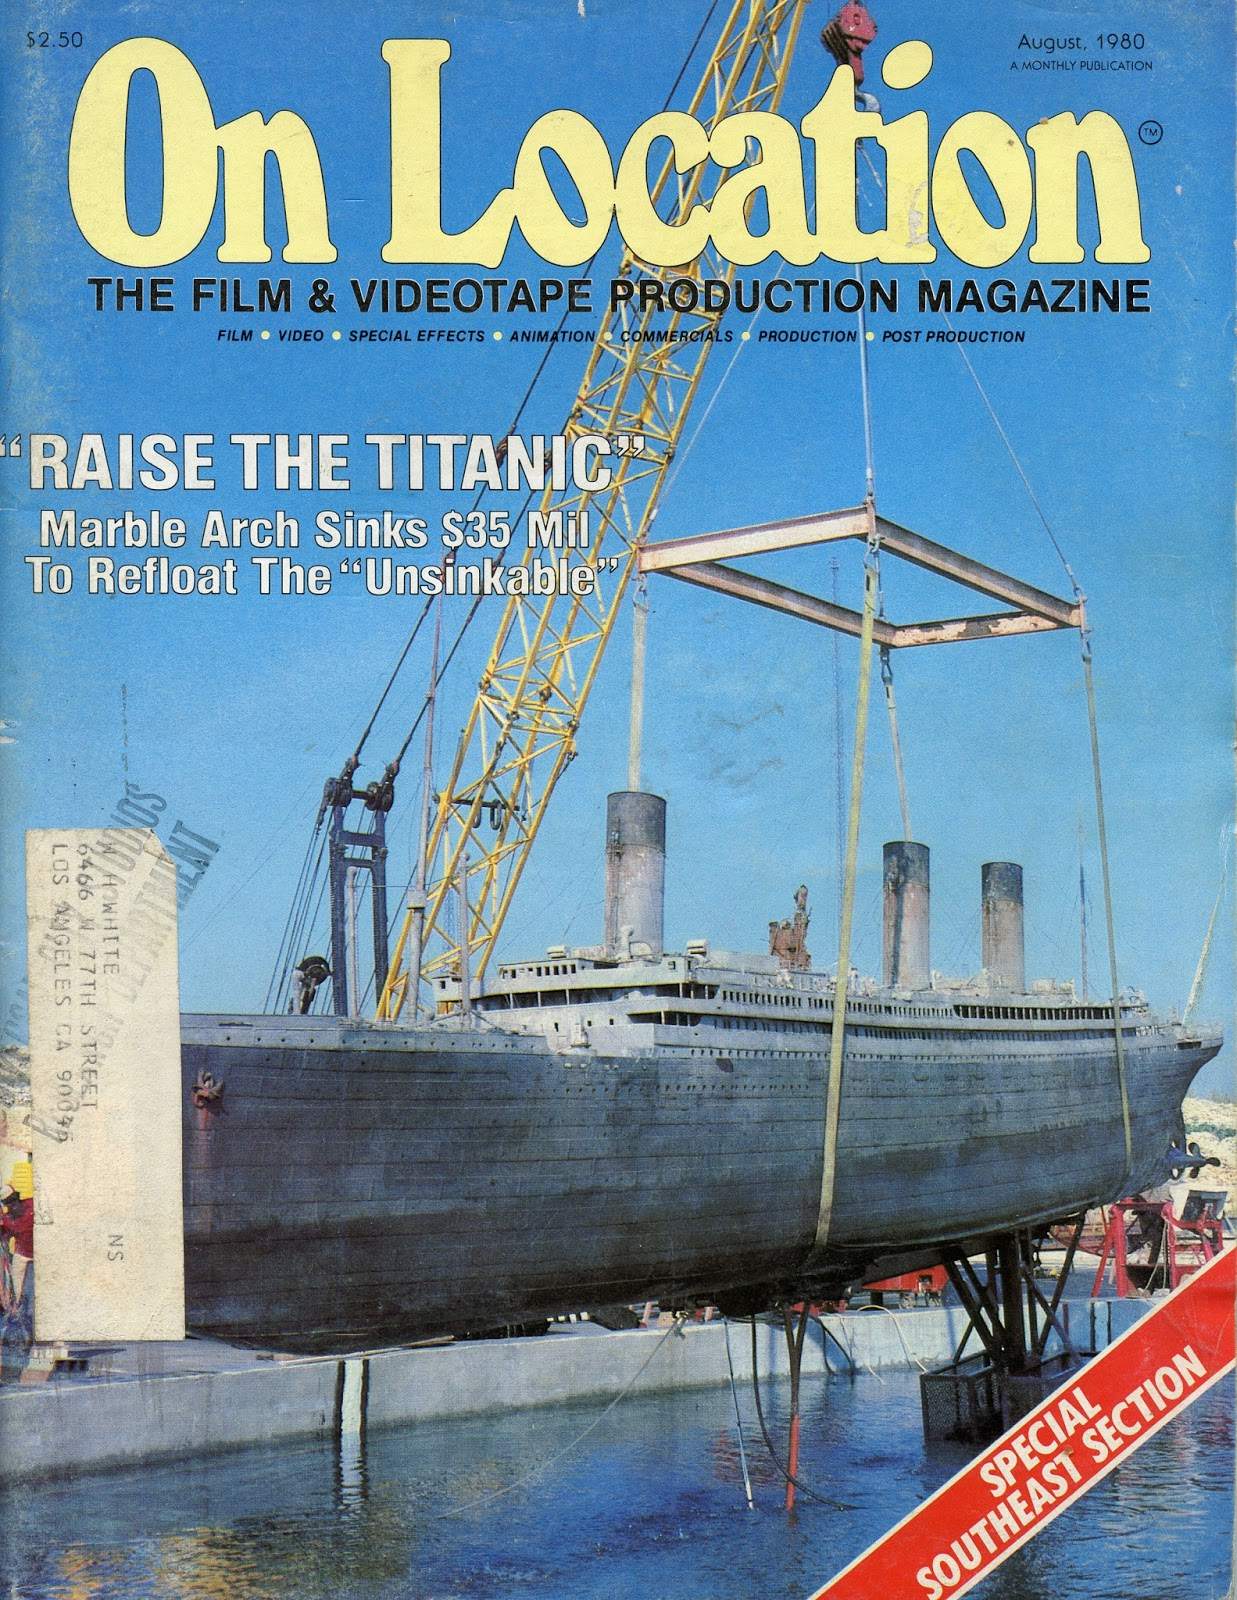 Clive Cussler Book Collecting Raise The Titanic On Location